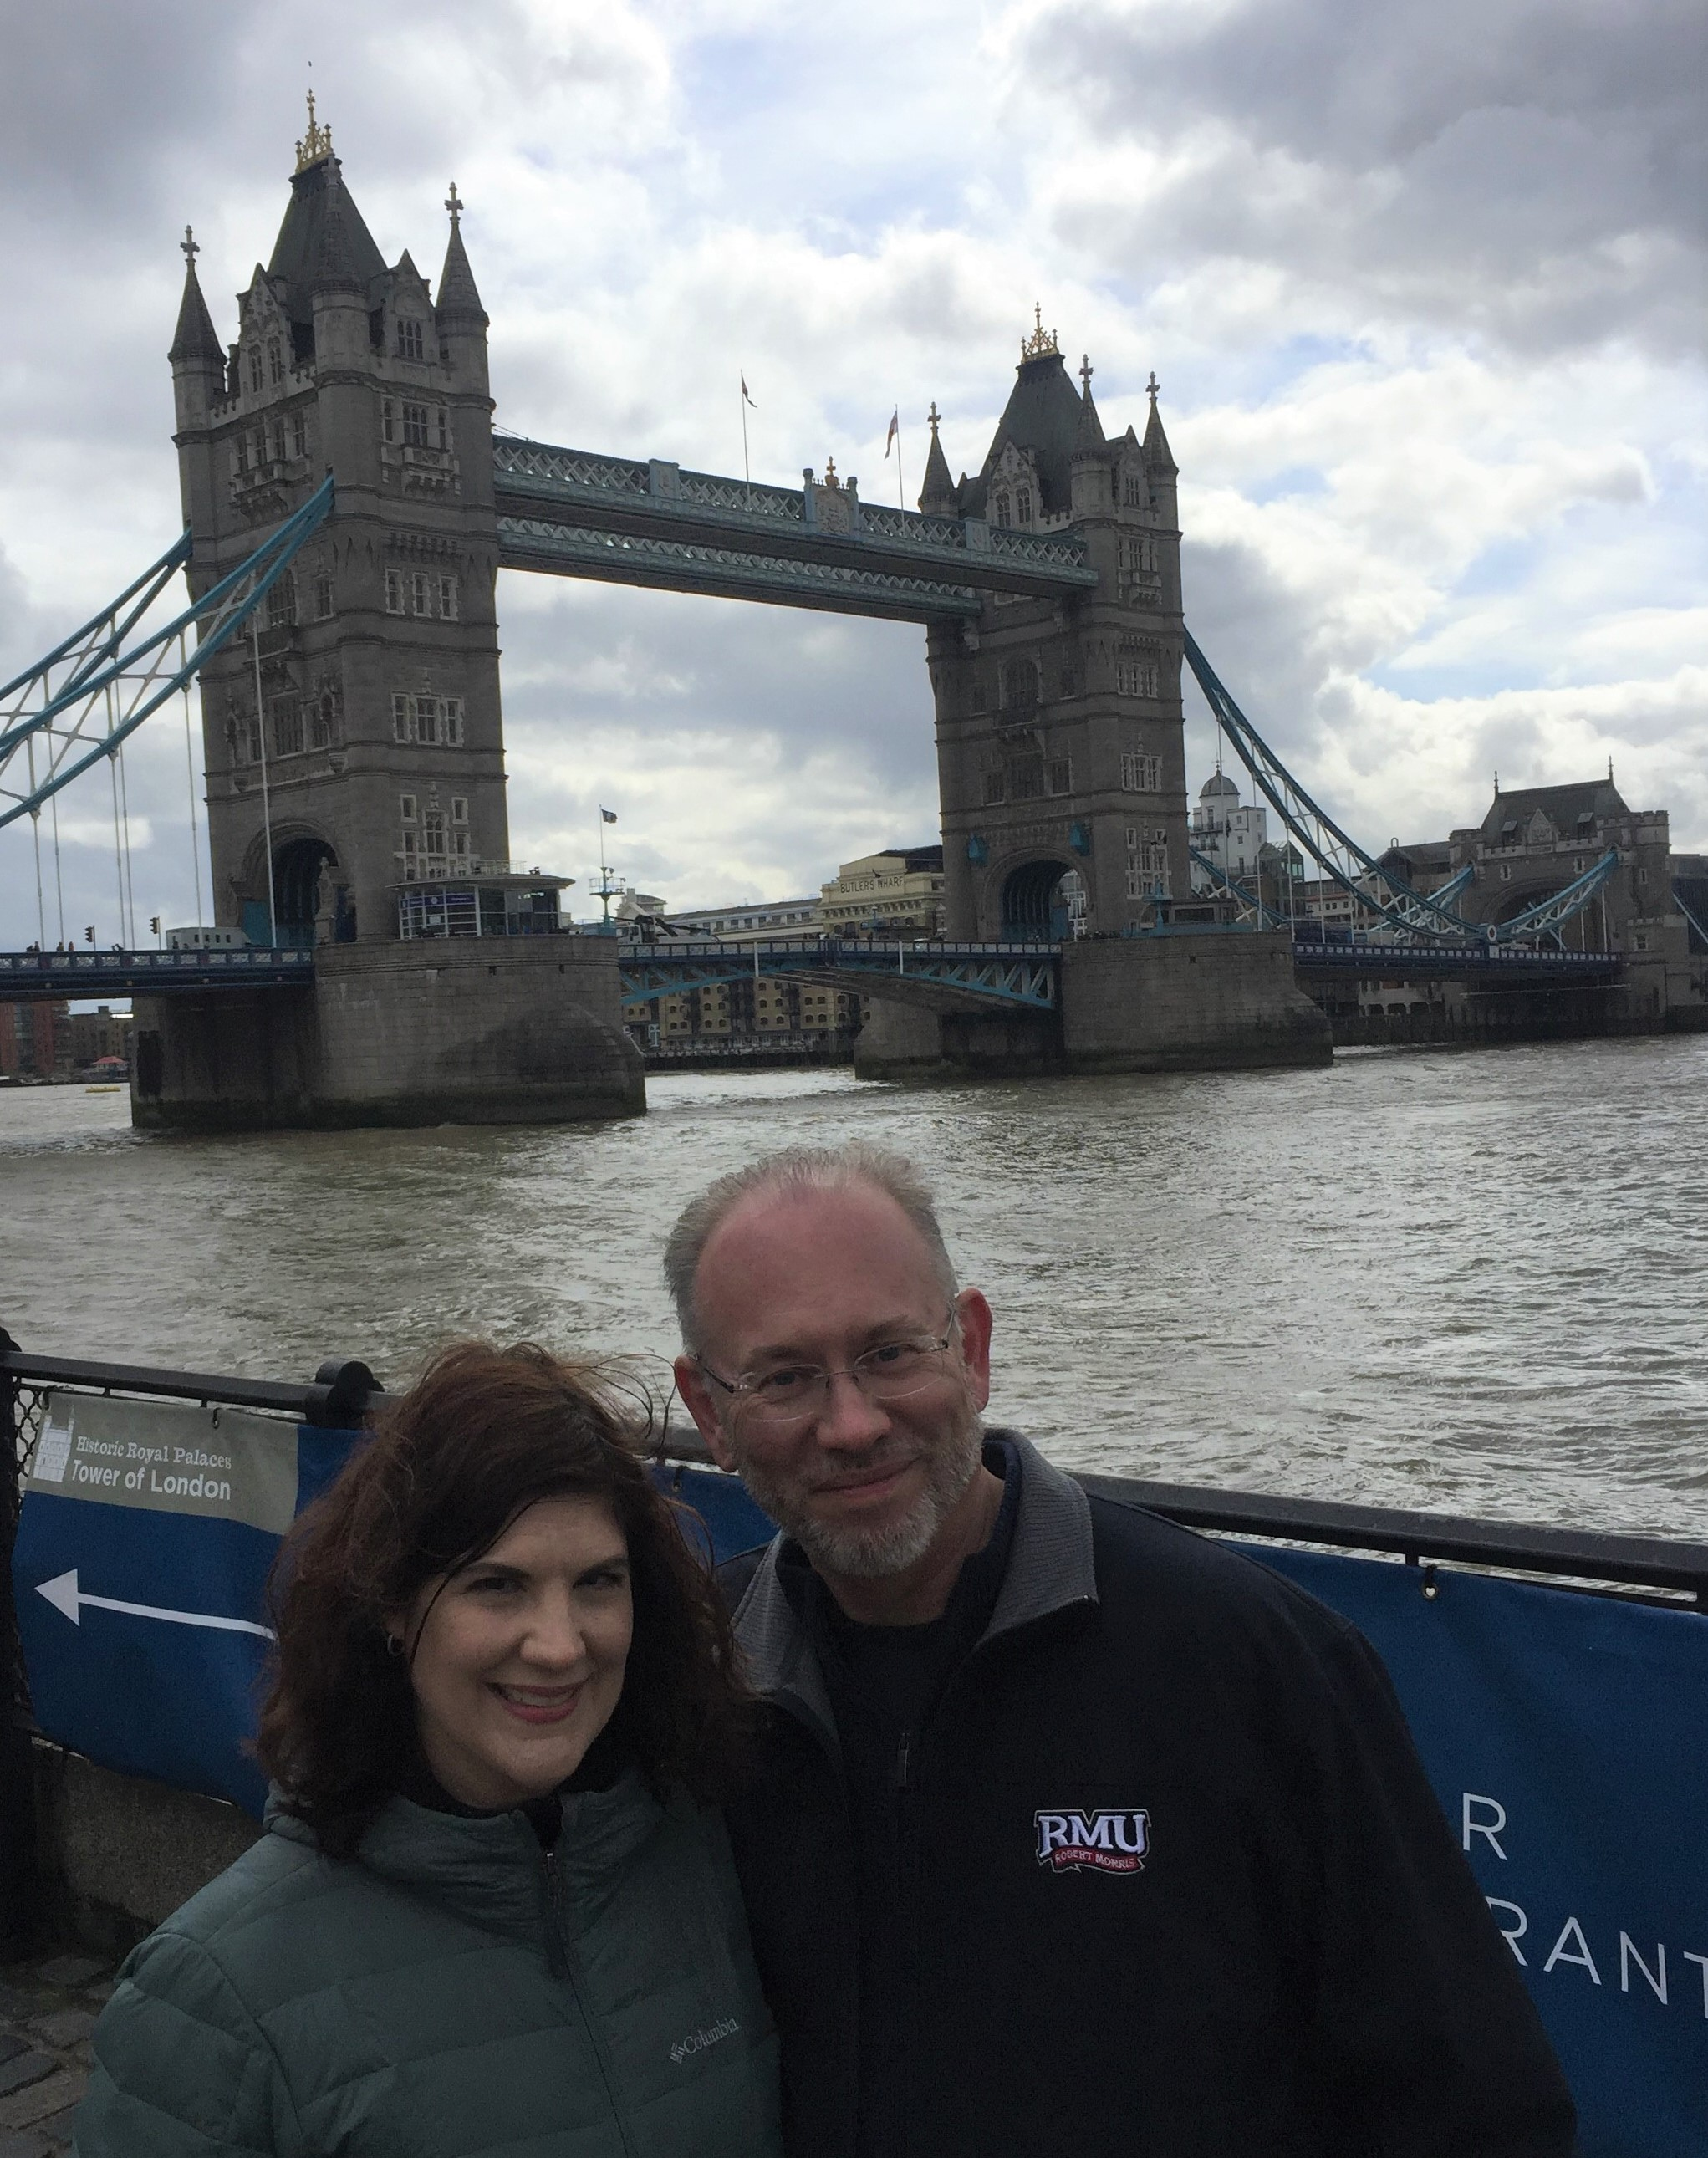 Renée Govanucci and Marty Ashby in London